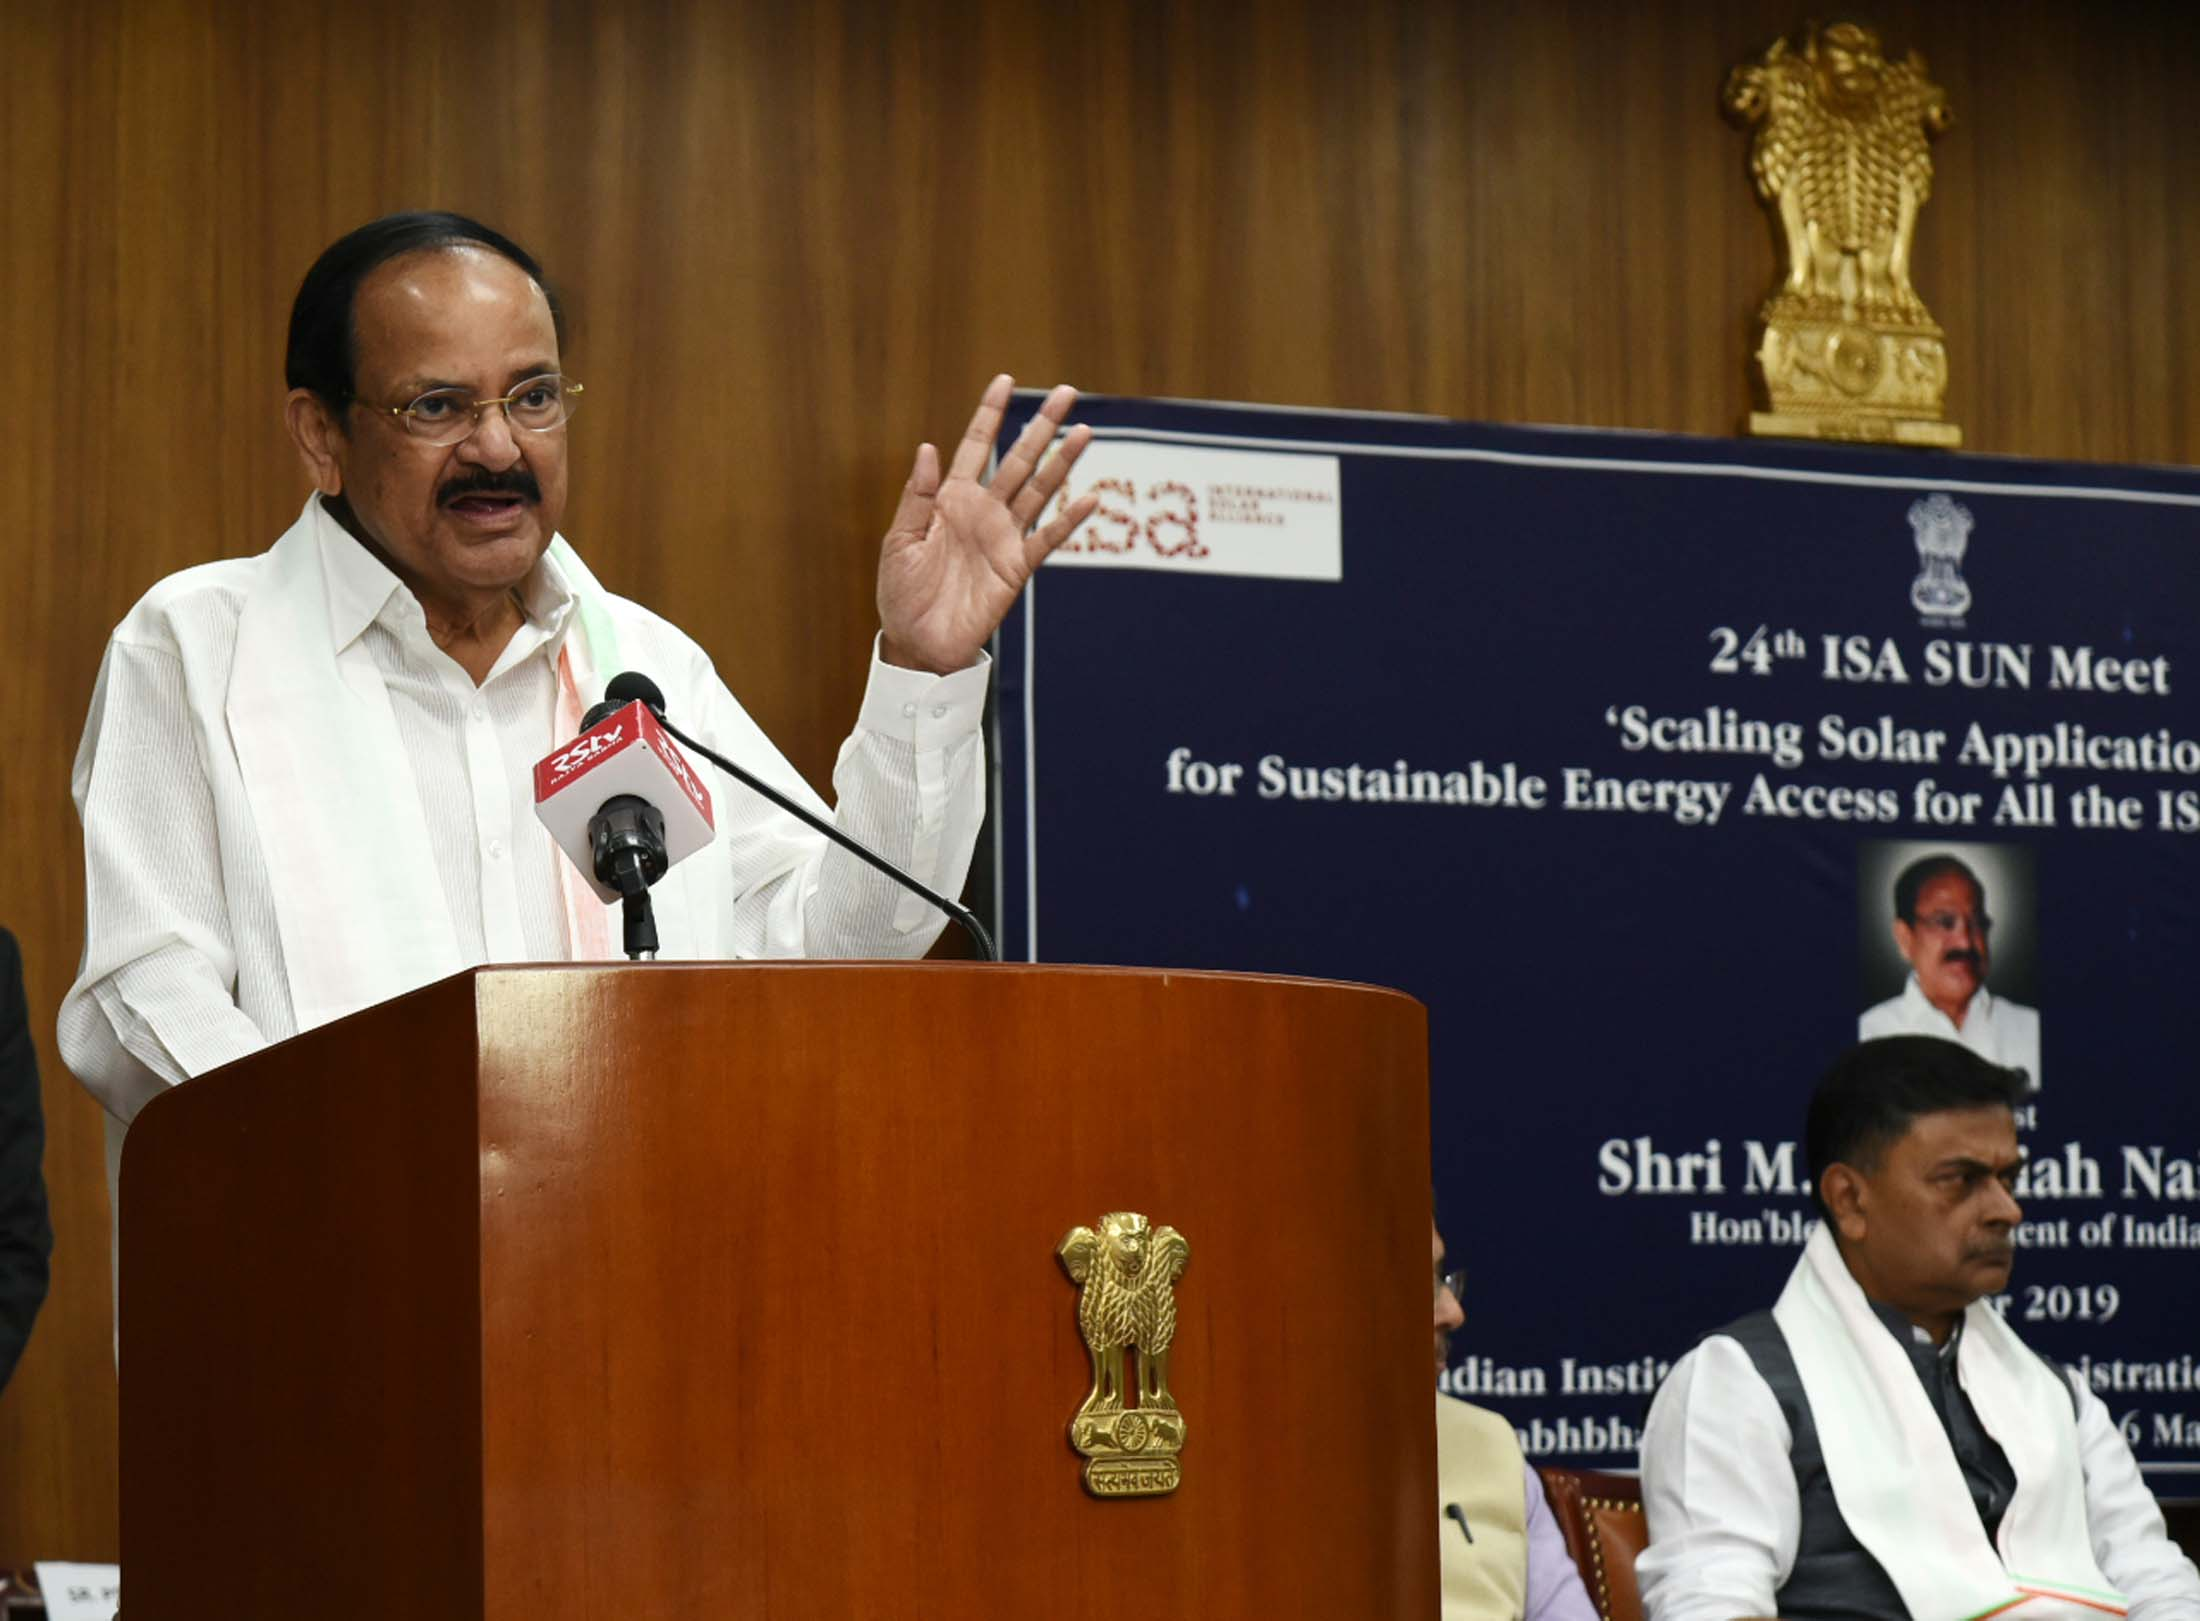 The Vice President, Shri M. Venkaiah Naidu addressing the gathering at the inauguration of the 24th International Solar Alliance (ISA) Sun Meet, in New Delhi on October 21, 2019. Shri Raj Kumar Singh, Minister of State (Independent Charge) of the Ministry of Power and Ministry of New and Renewable Energy was also present.